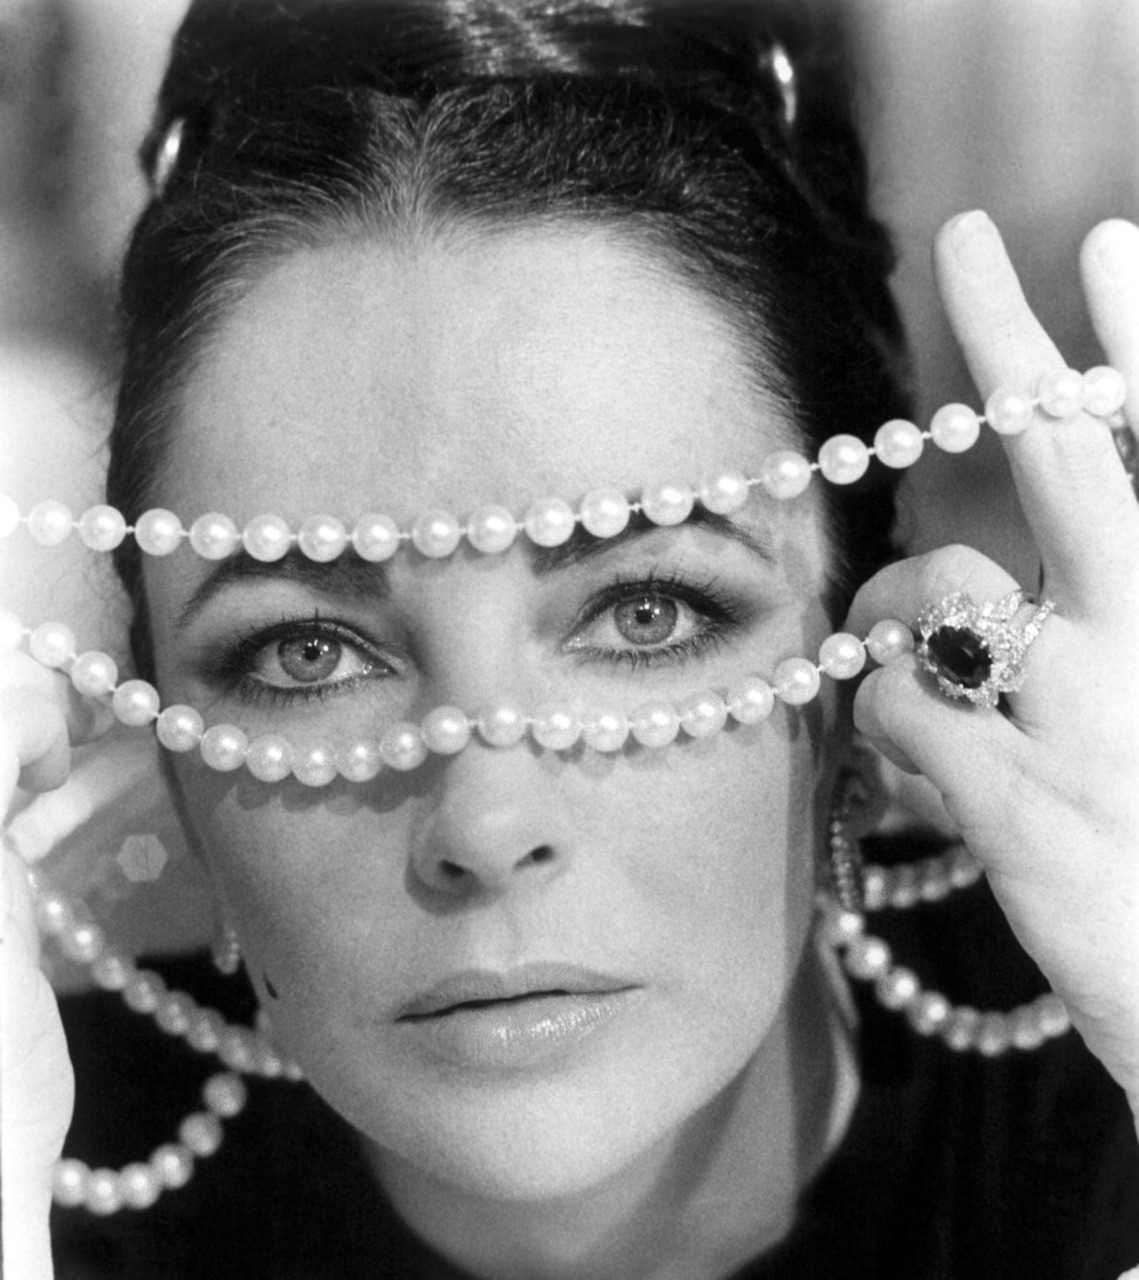 Elizabeth Taylor in Ash Wednesday (1973). (Source)